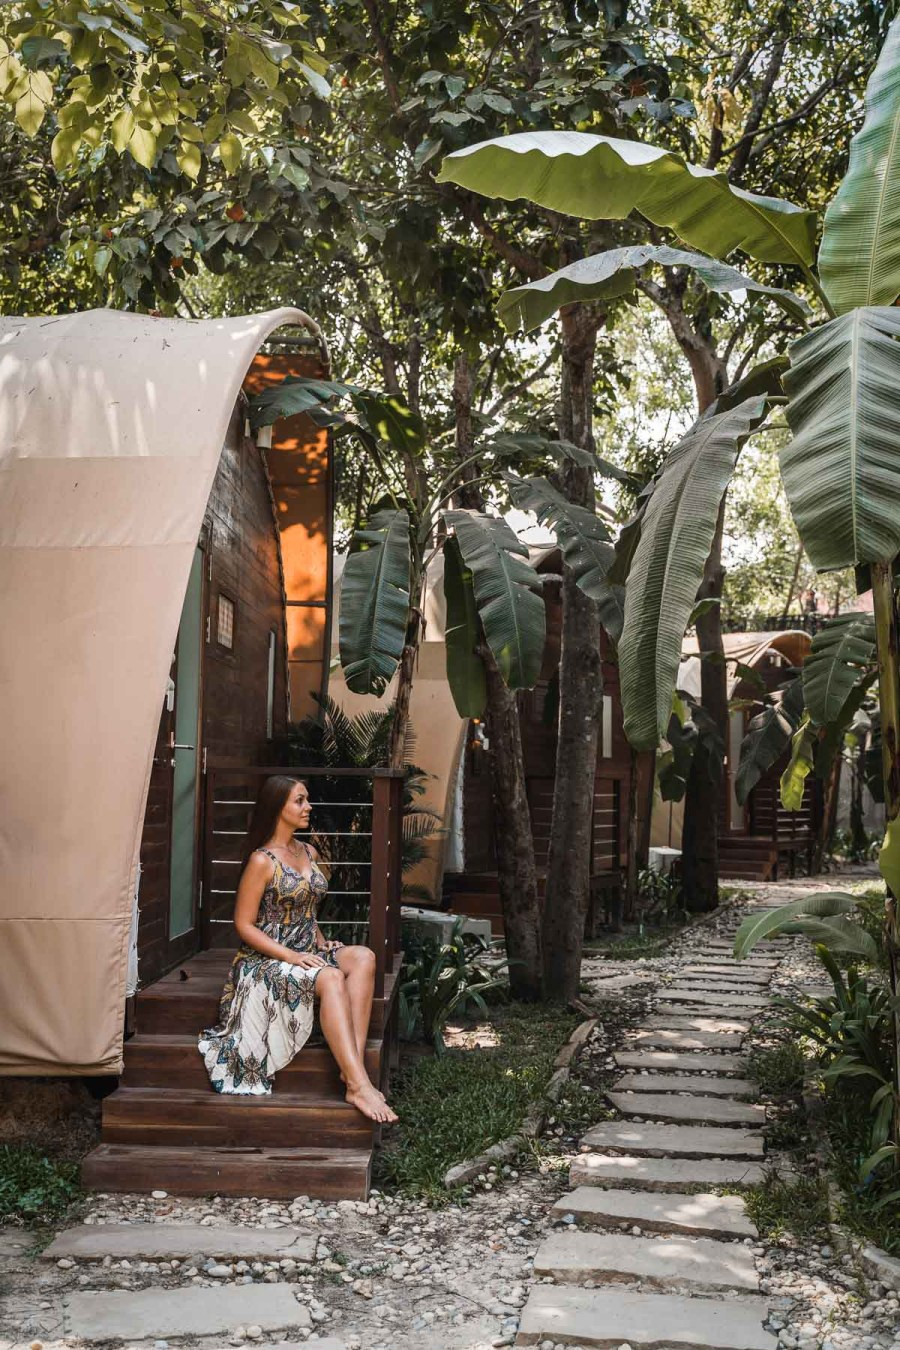 Girl sitting in front of one of the Jungloo Tents at Templation Siem Reap